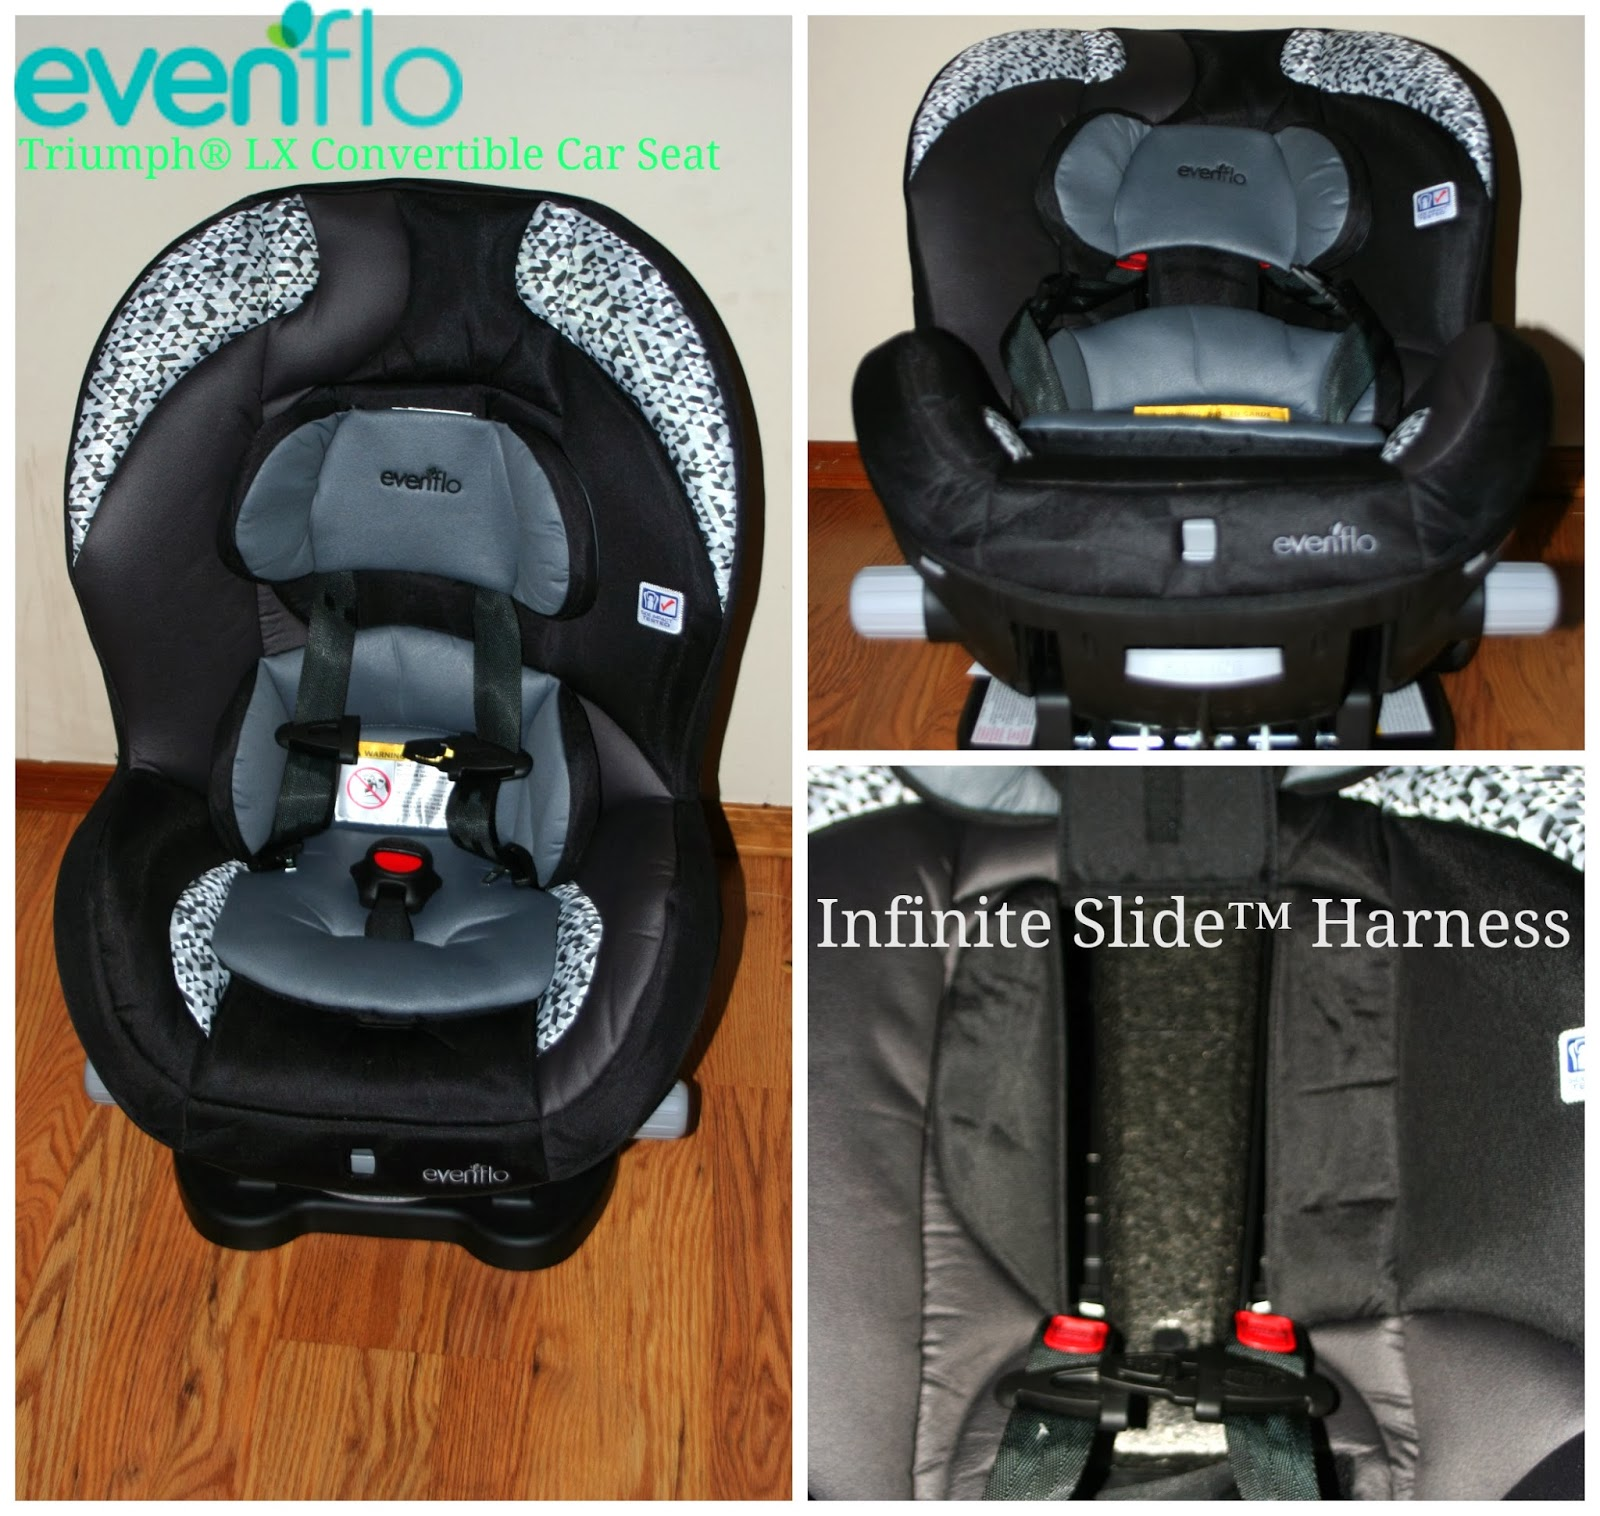 evenflo tribute lx convertible car seat installation instructions. Black Bedroom Furniture Sets. Home Design Ideas